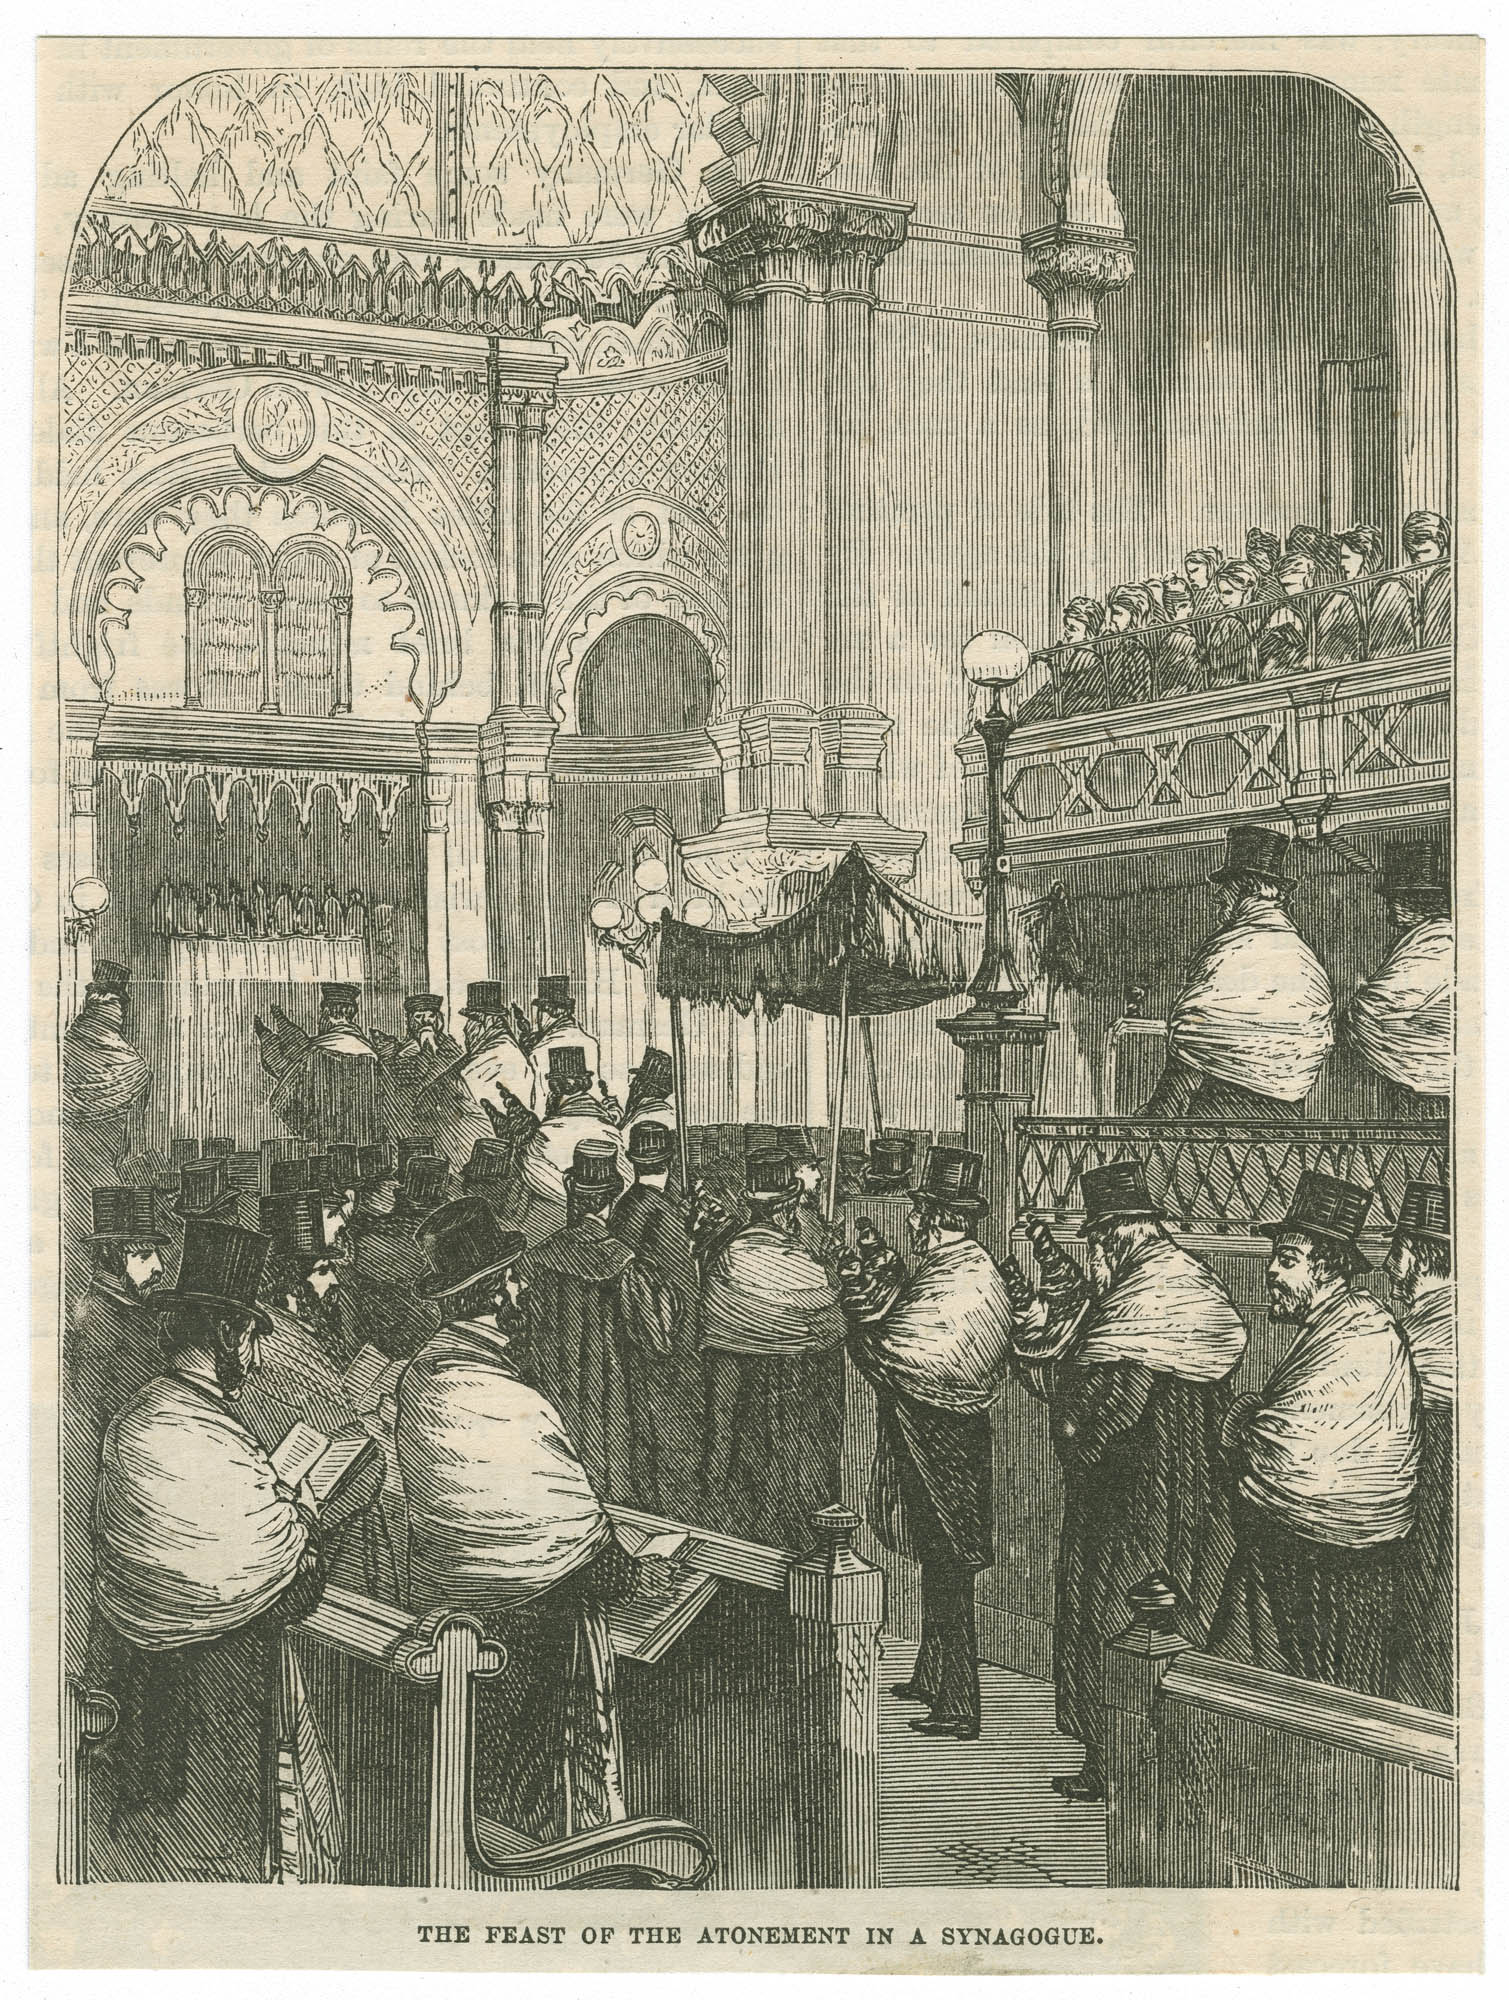 The Feast of the Atonement in a Synagogue